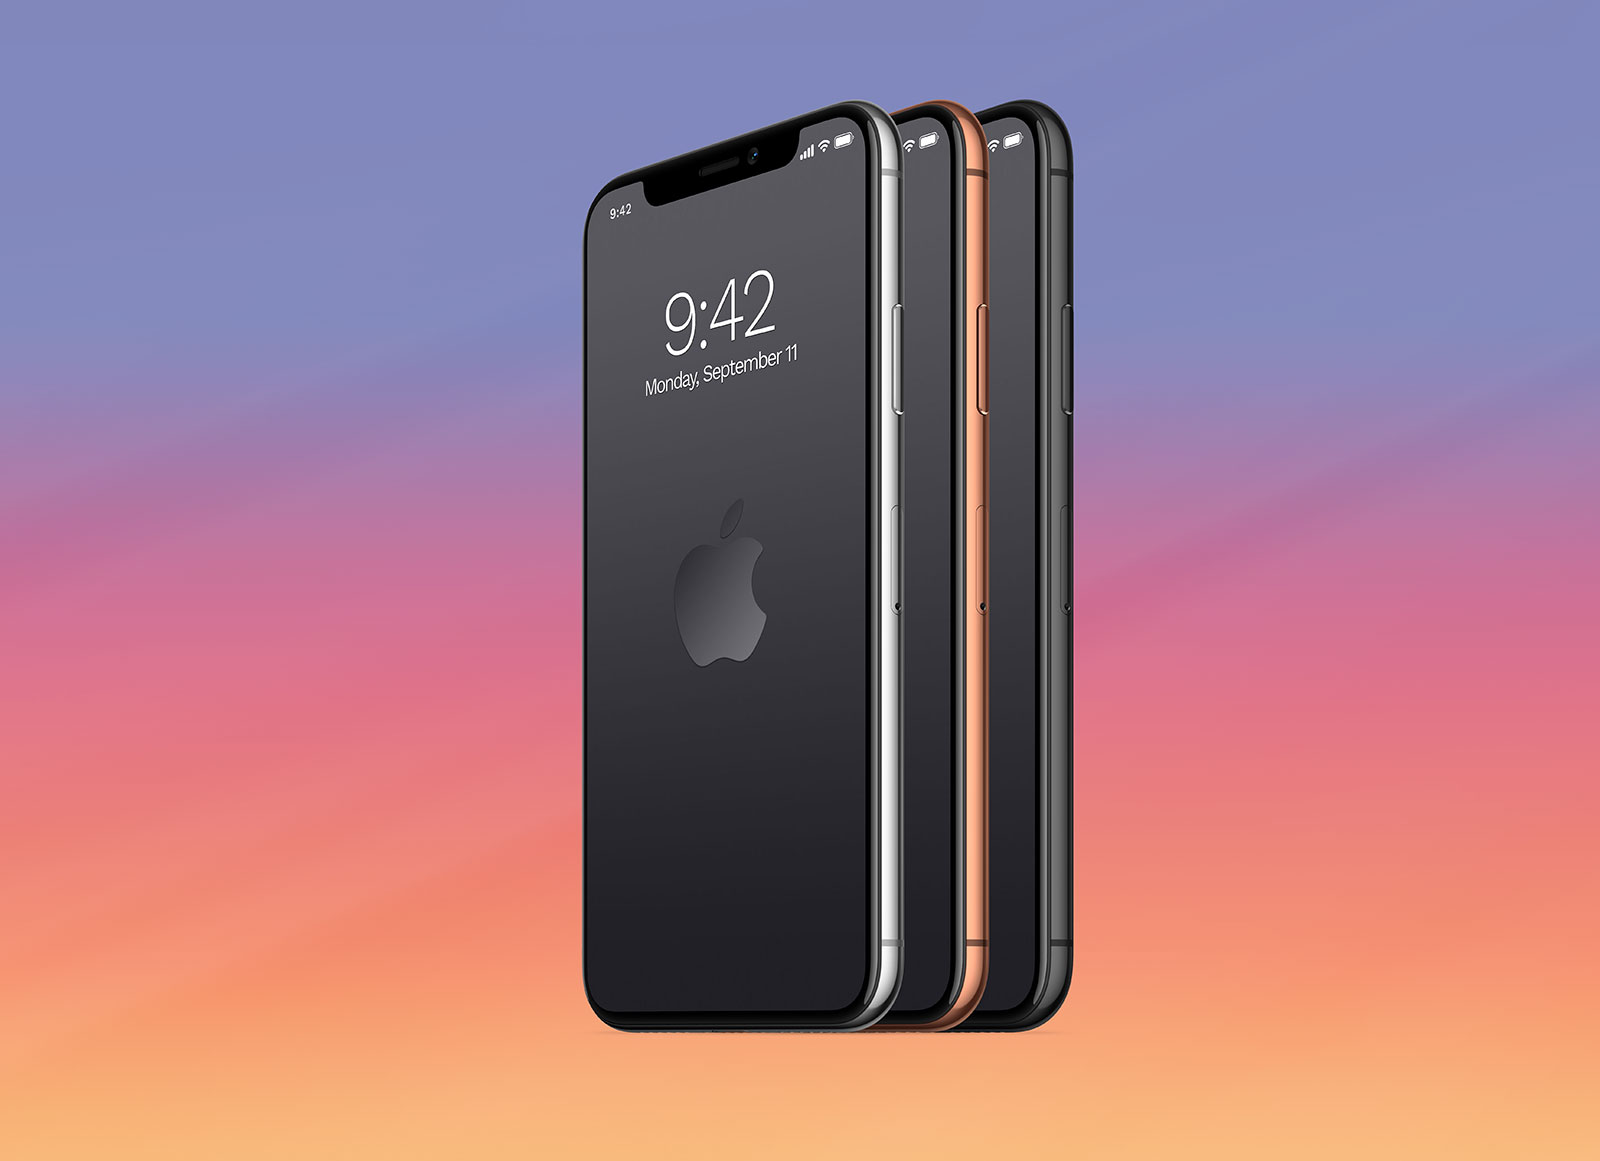 Free Iphone X Side View Psd Mockup Template Good Mockups